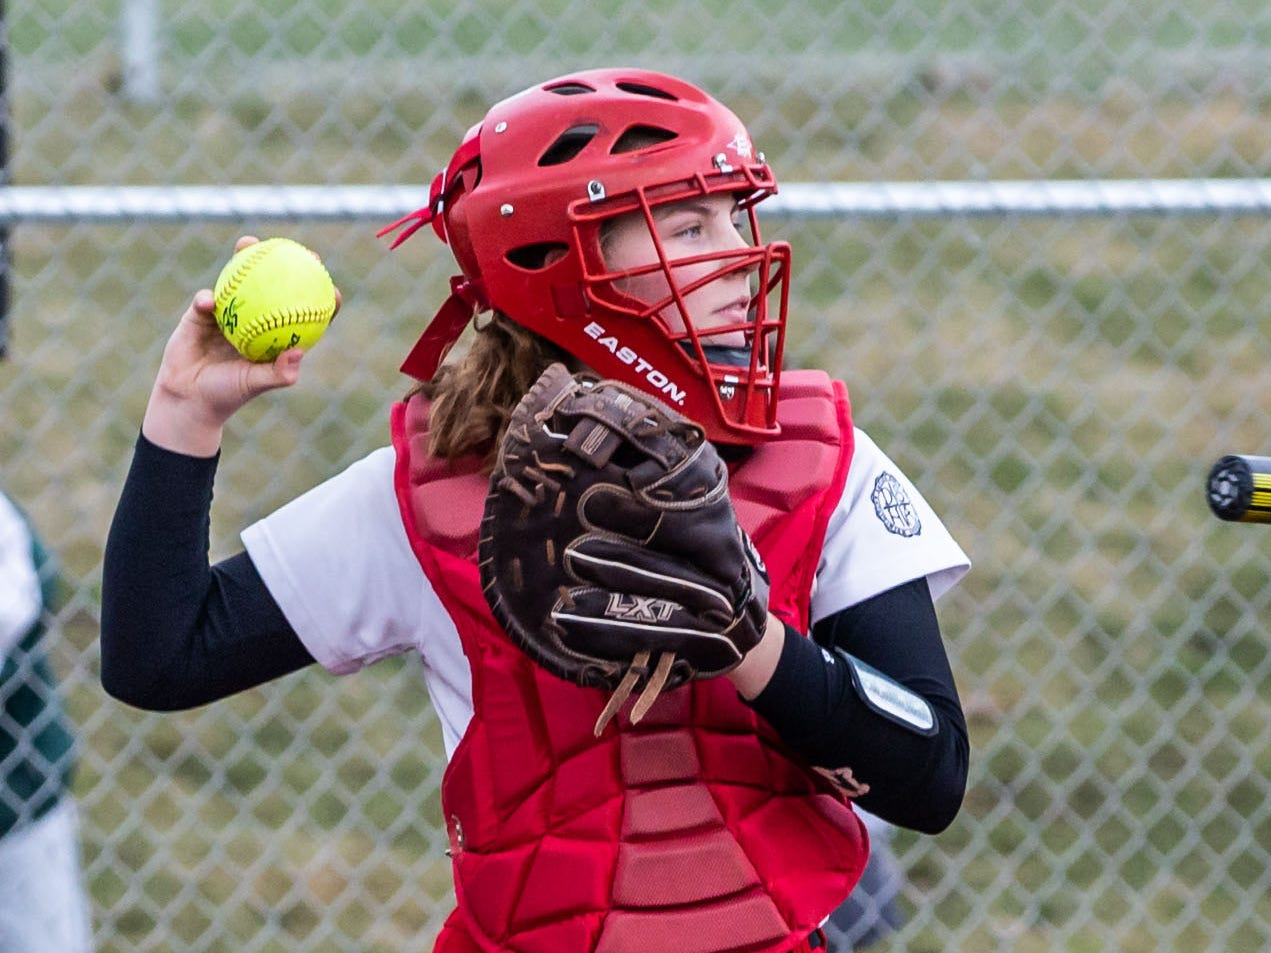 DSHA catcher Brooke Mackey holds back a runner on second during the game at Wauwatosa West on Wednesday, April 17, 2019.